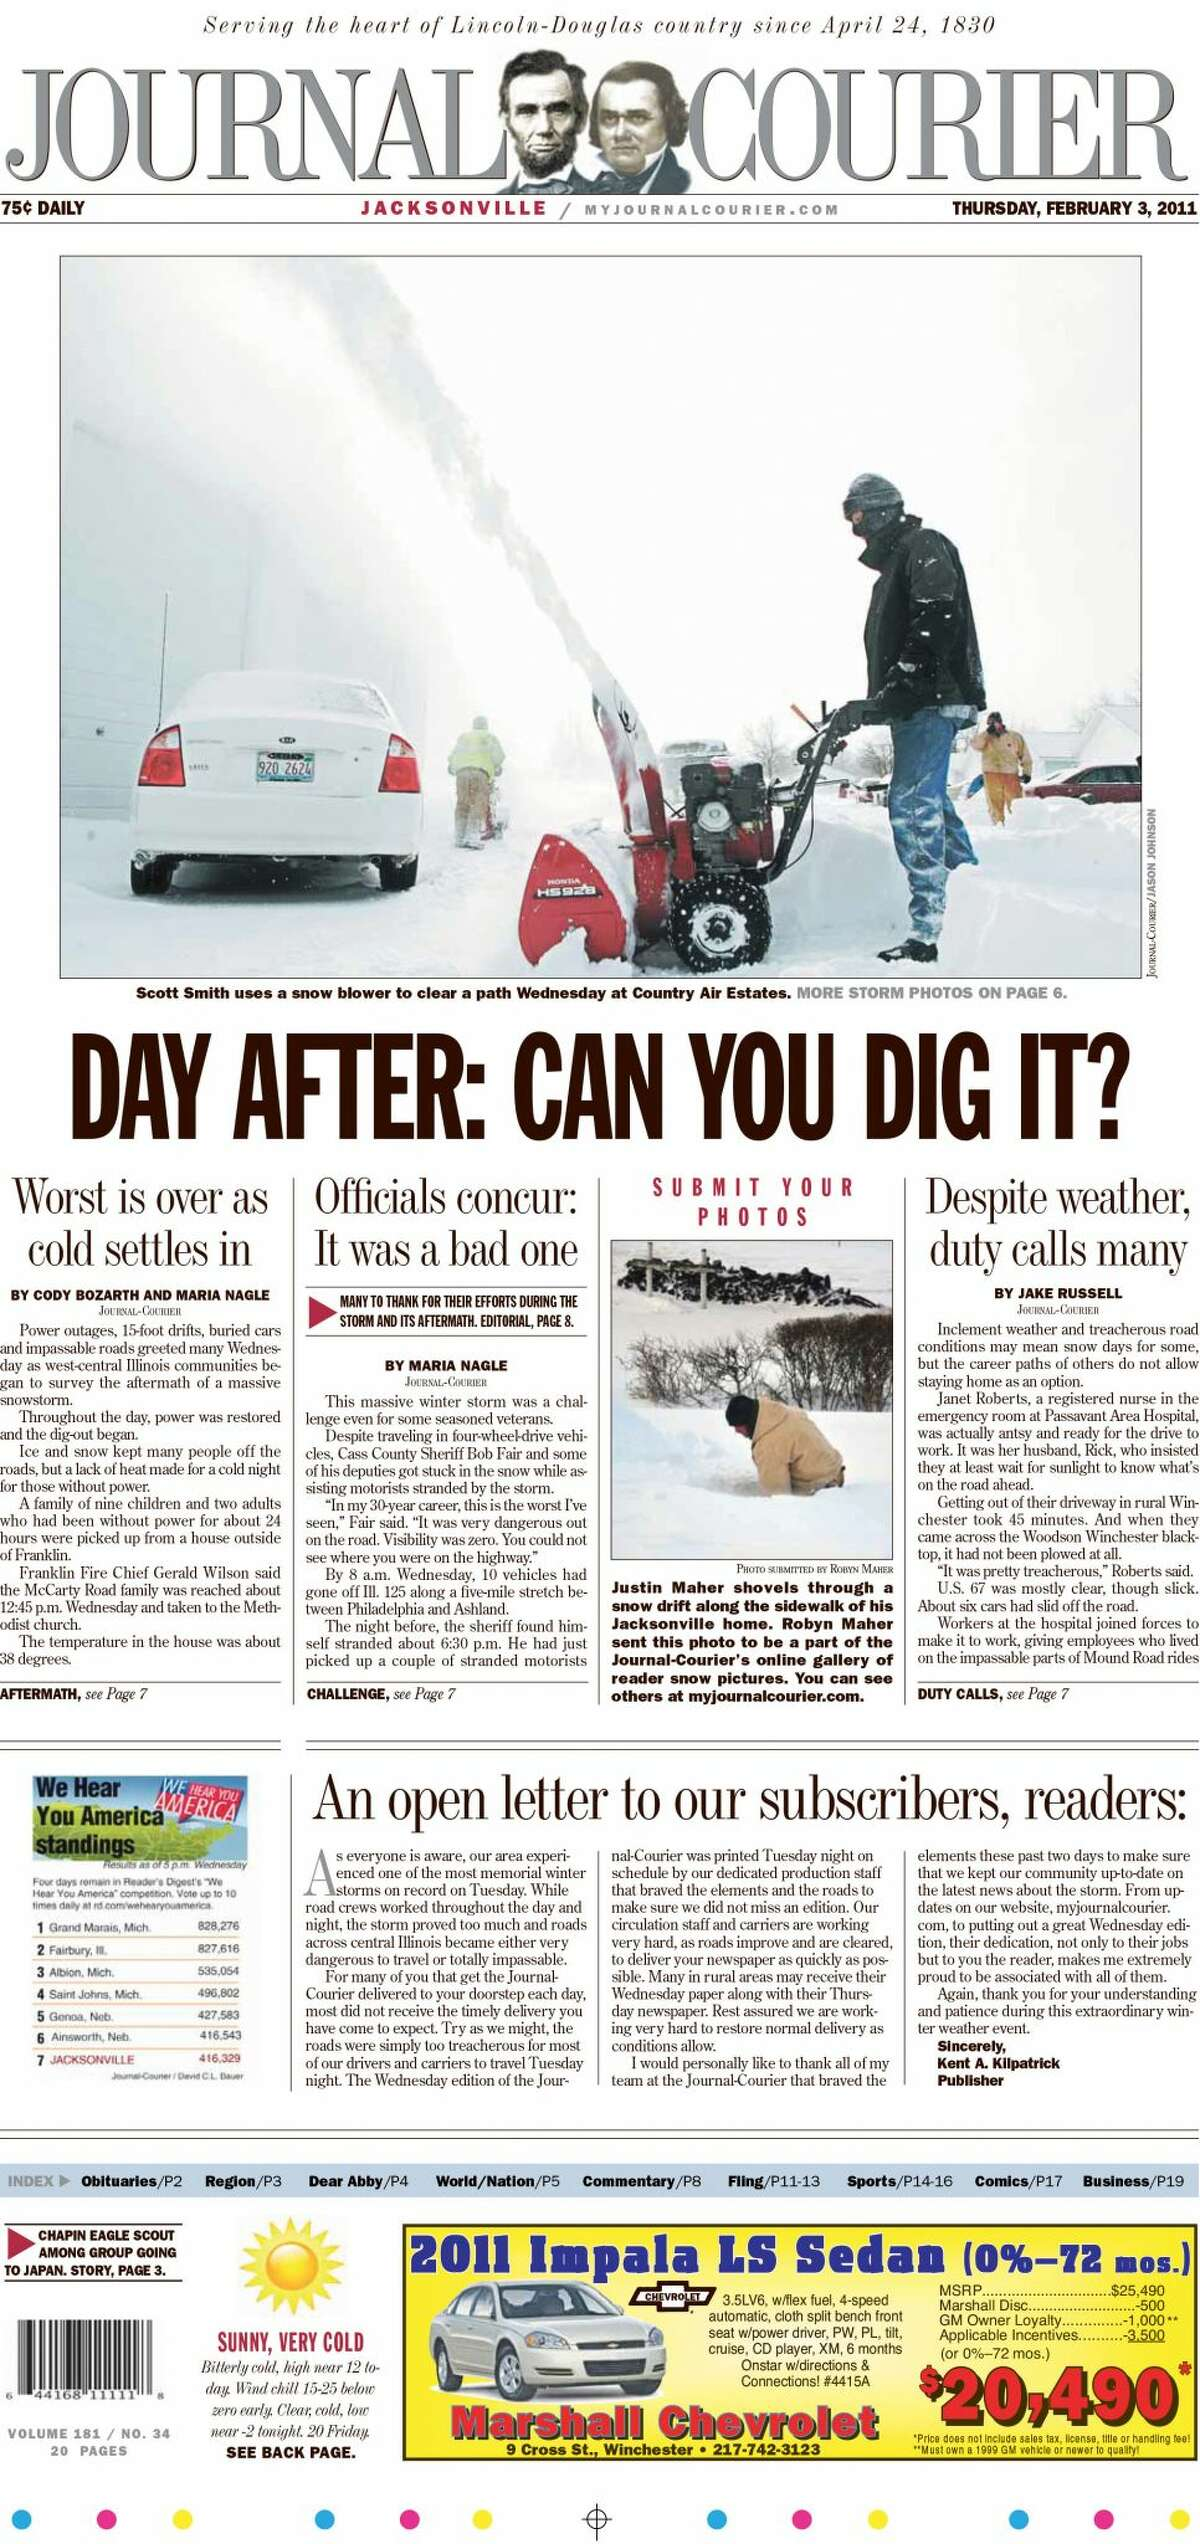 The front pages of the Journal-Courier for Feb. 1-3, 2011, report on the extent of a winter storm the dumped a record amount of snow on west-central Illinois, bringing with it bone-chilling temperatures.